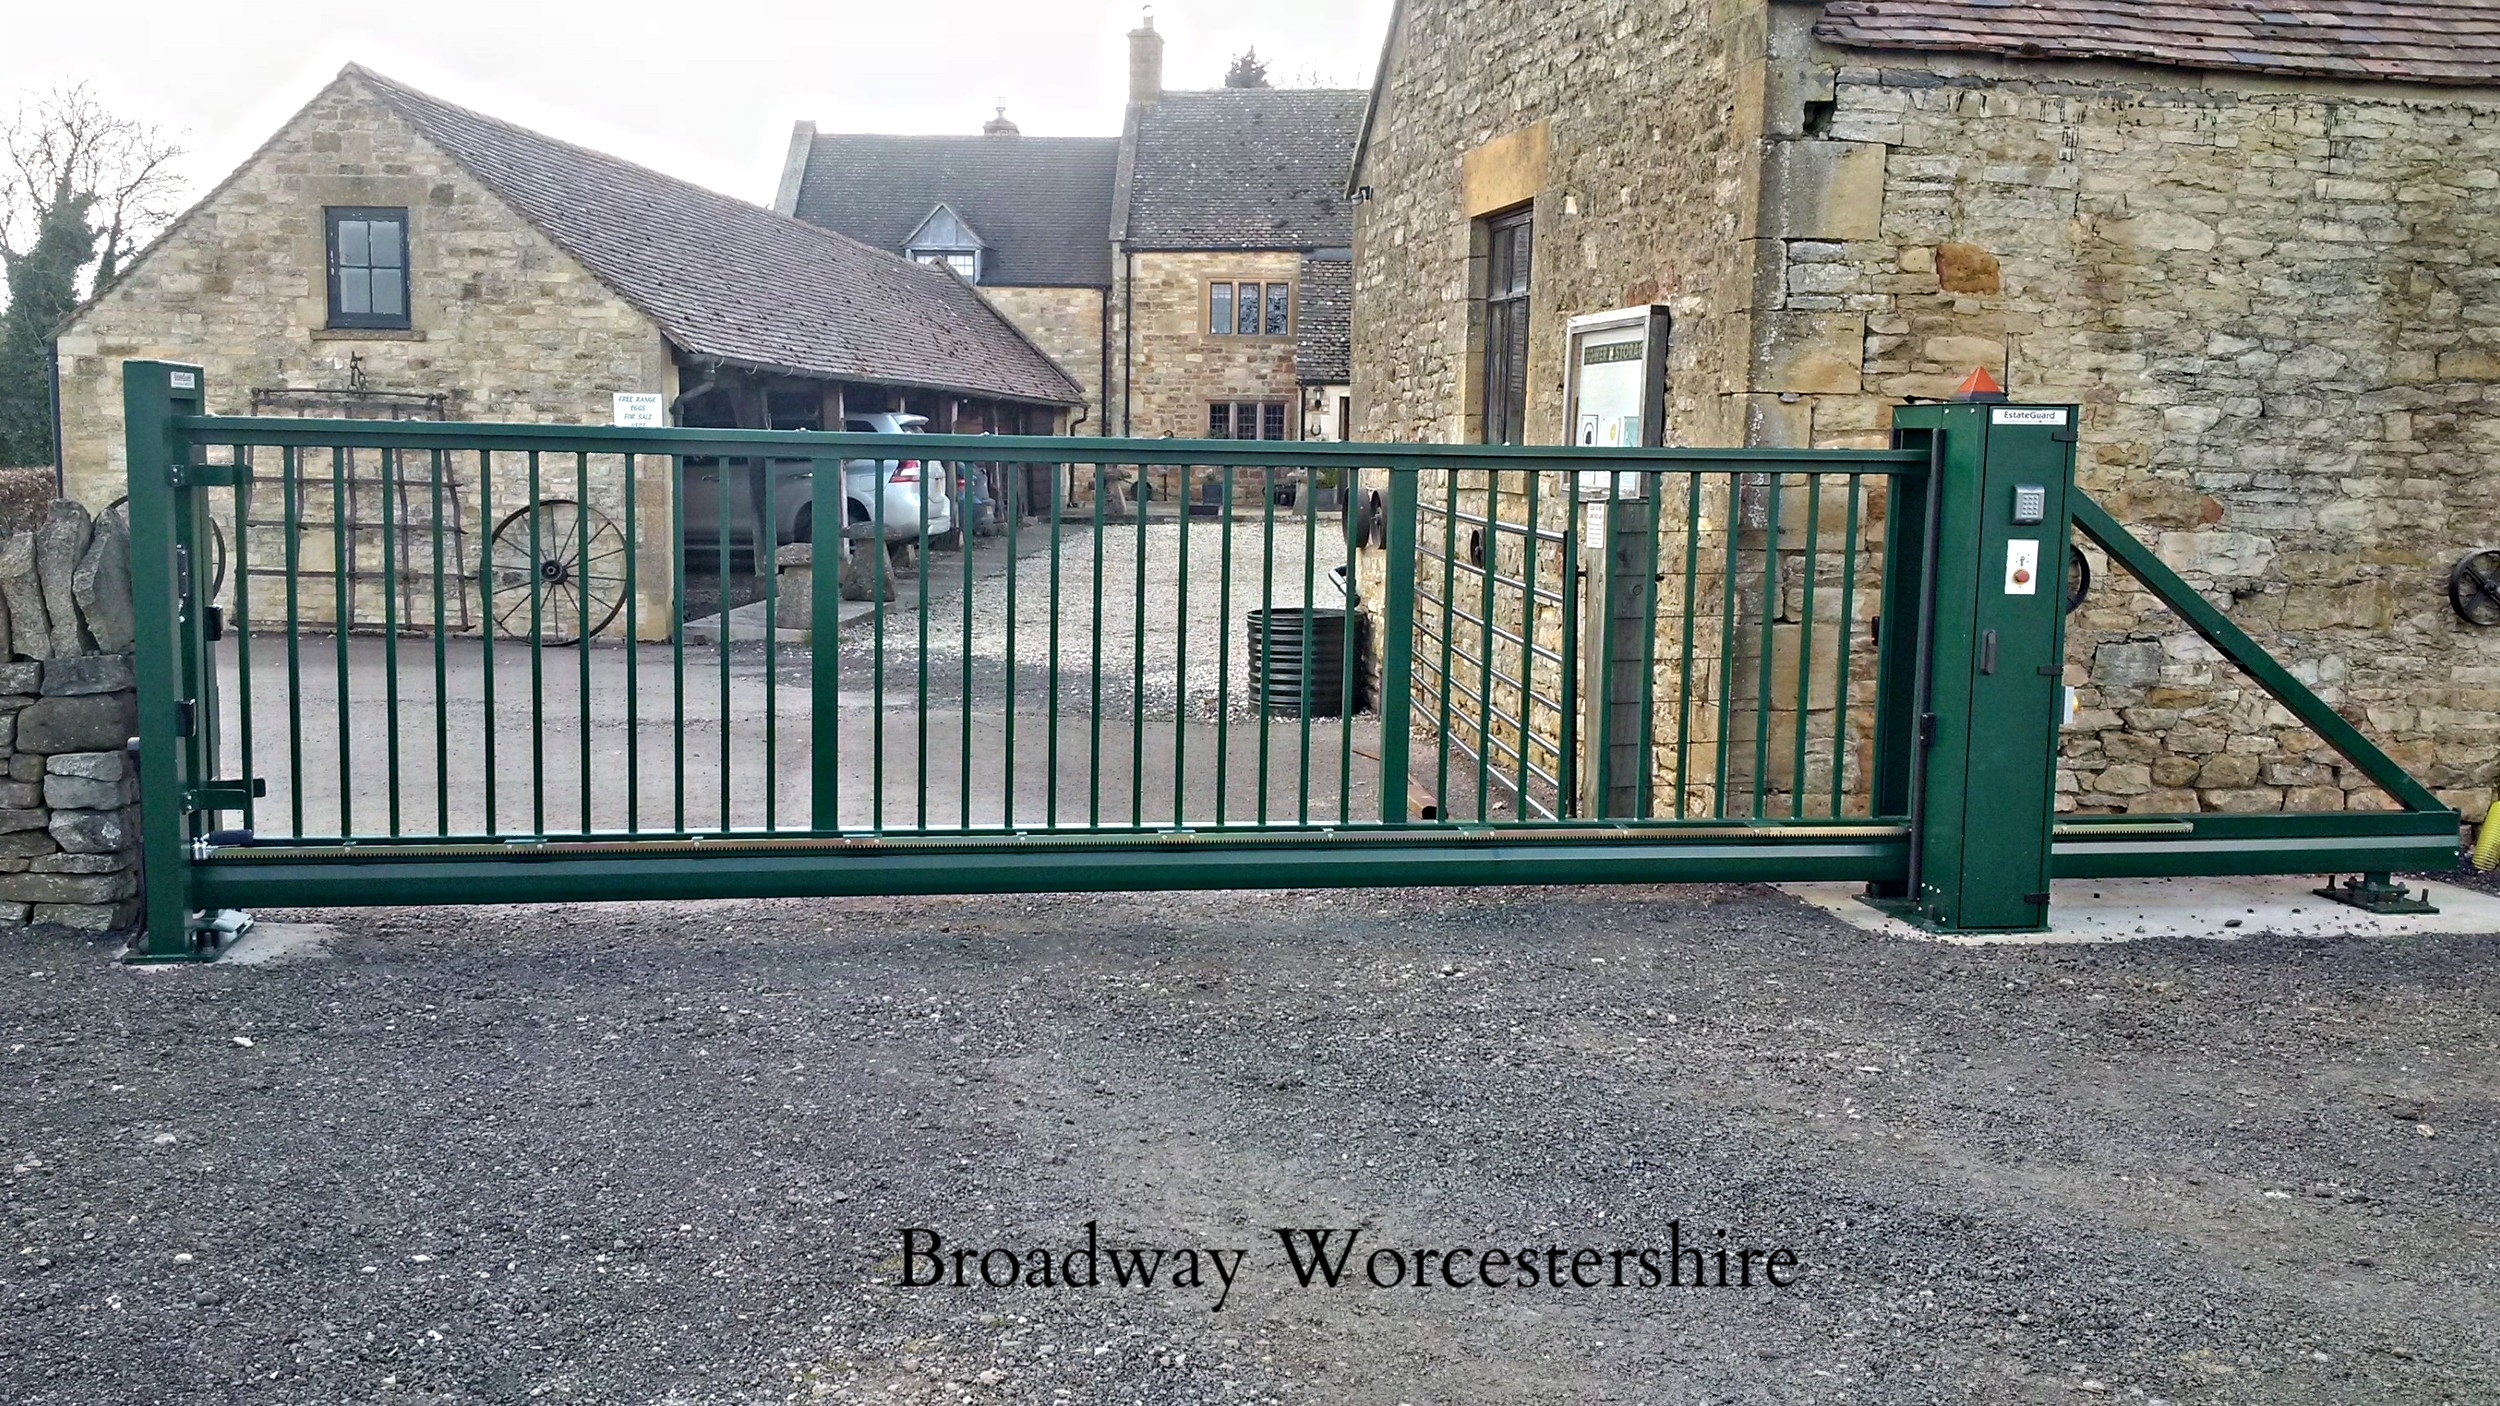 Copy of Broadway Worcestershire